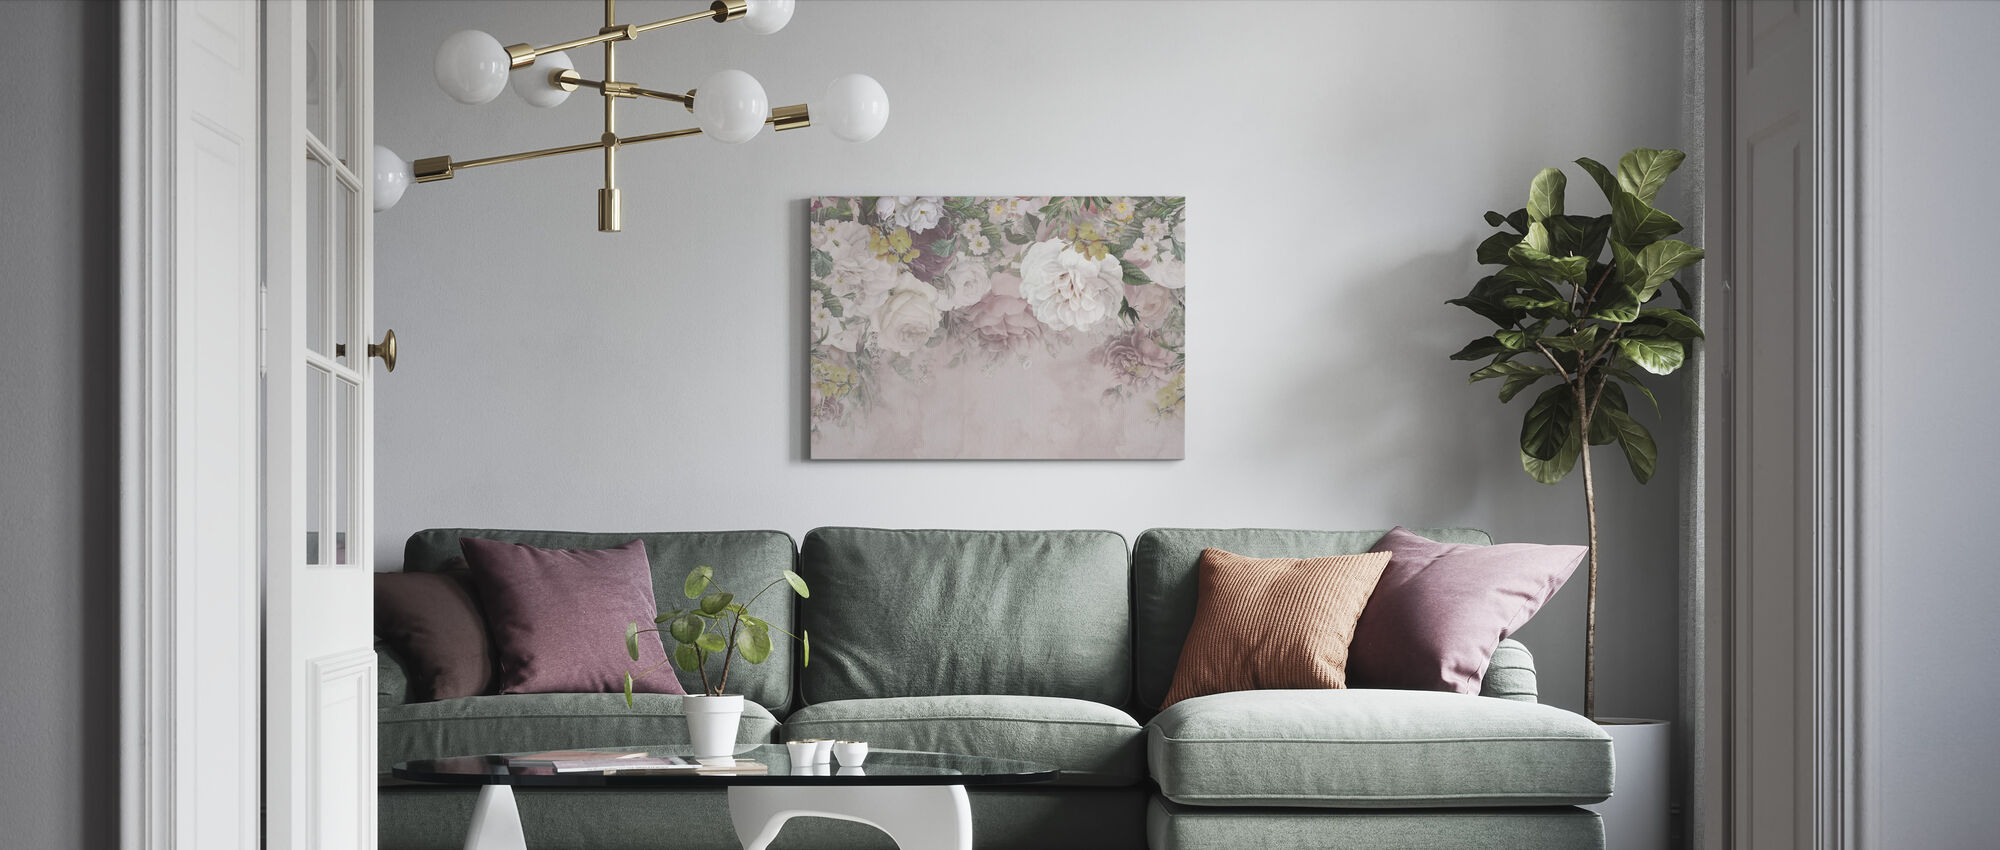 Gentle Flowers - Canvas print - Living Room